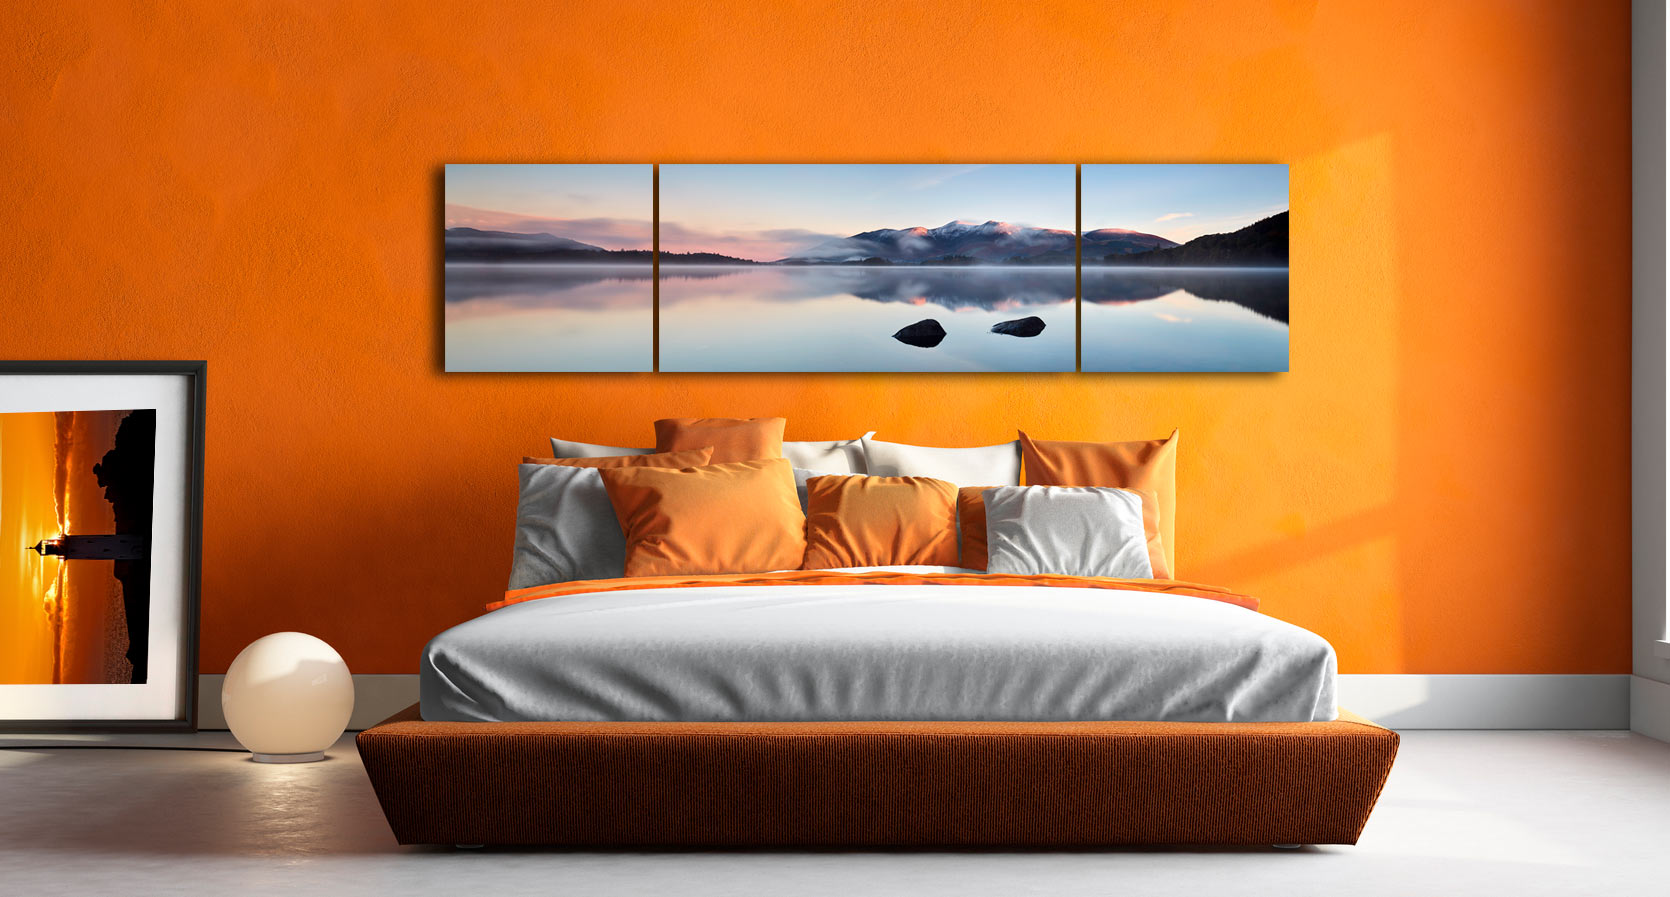 A New Day Dawns at Derwent Water - 3 Panel Canvas on Wall